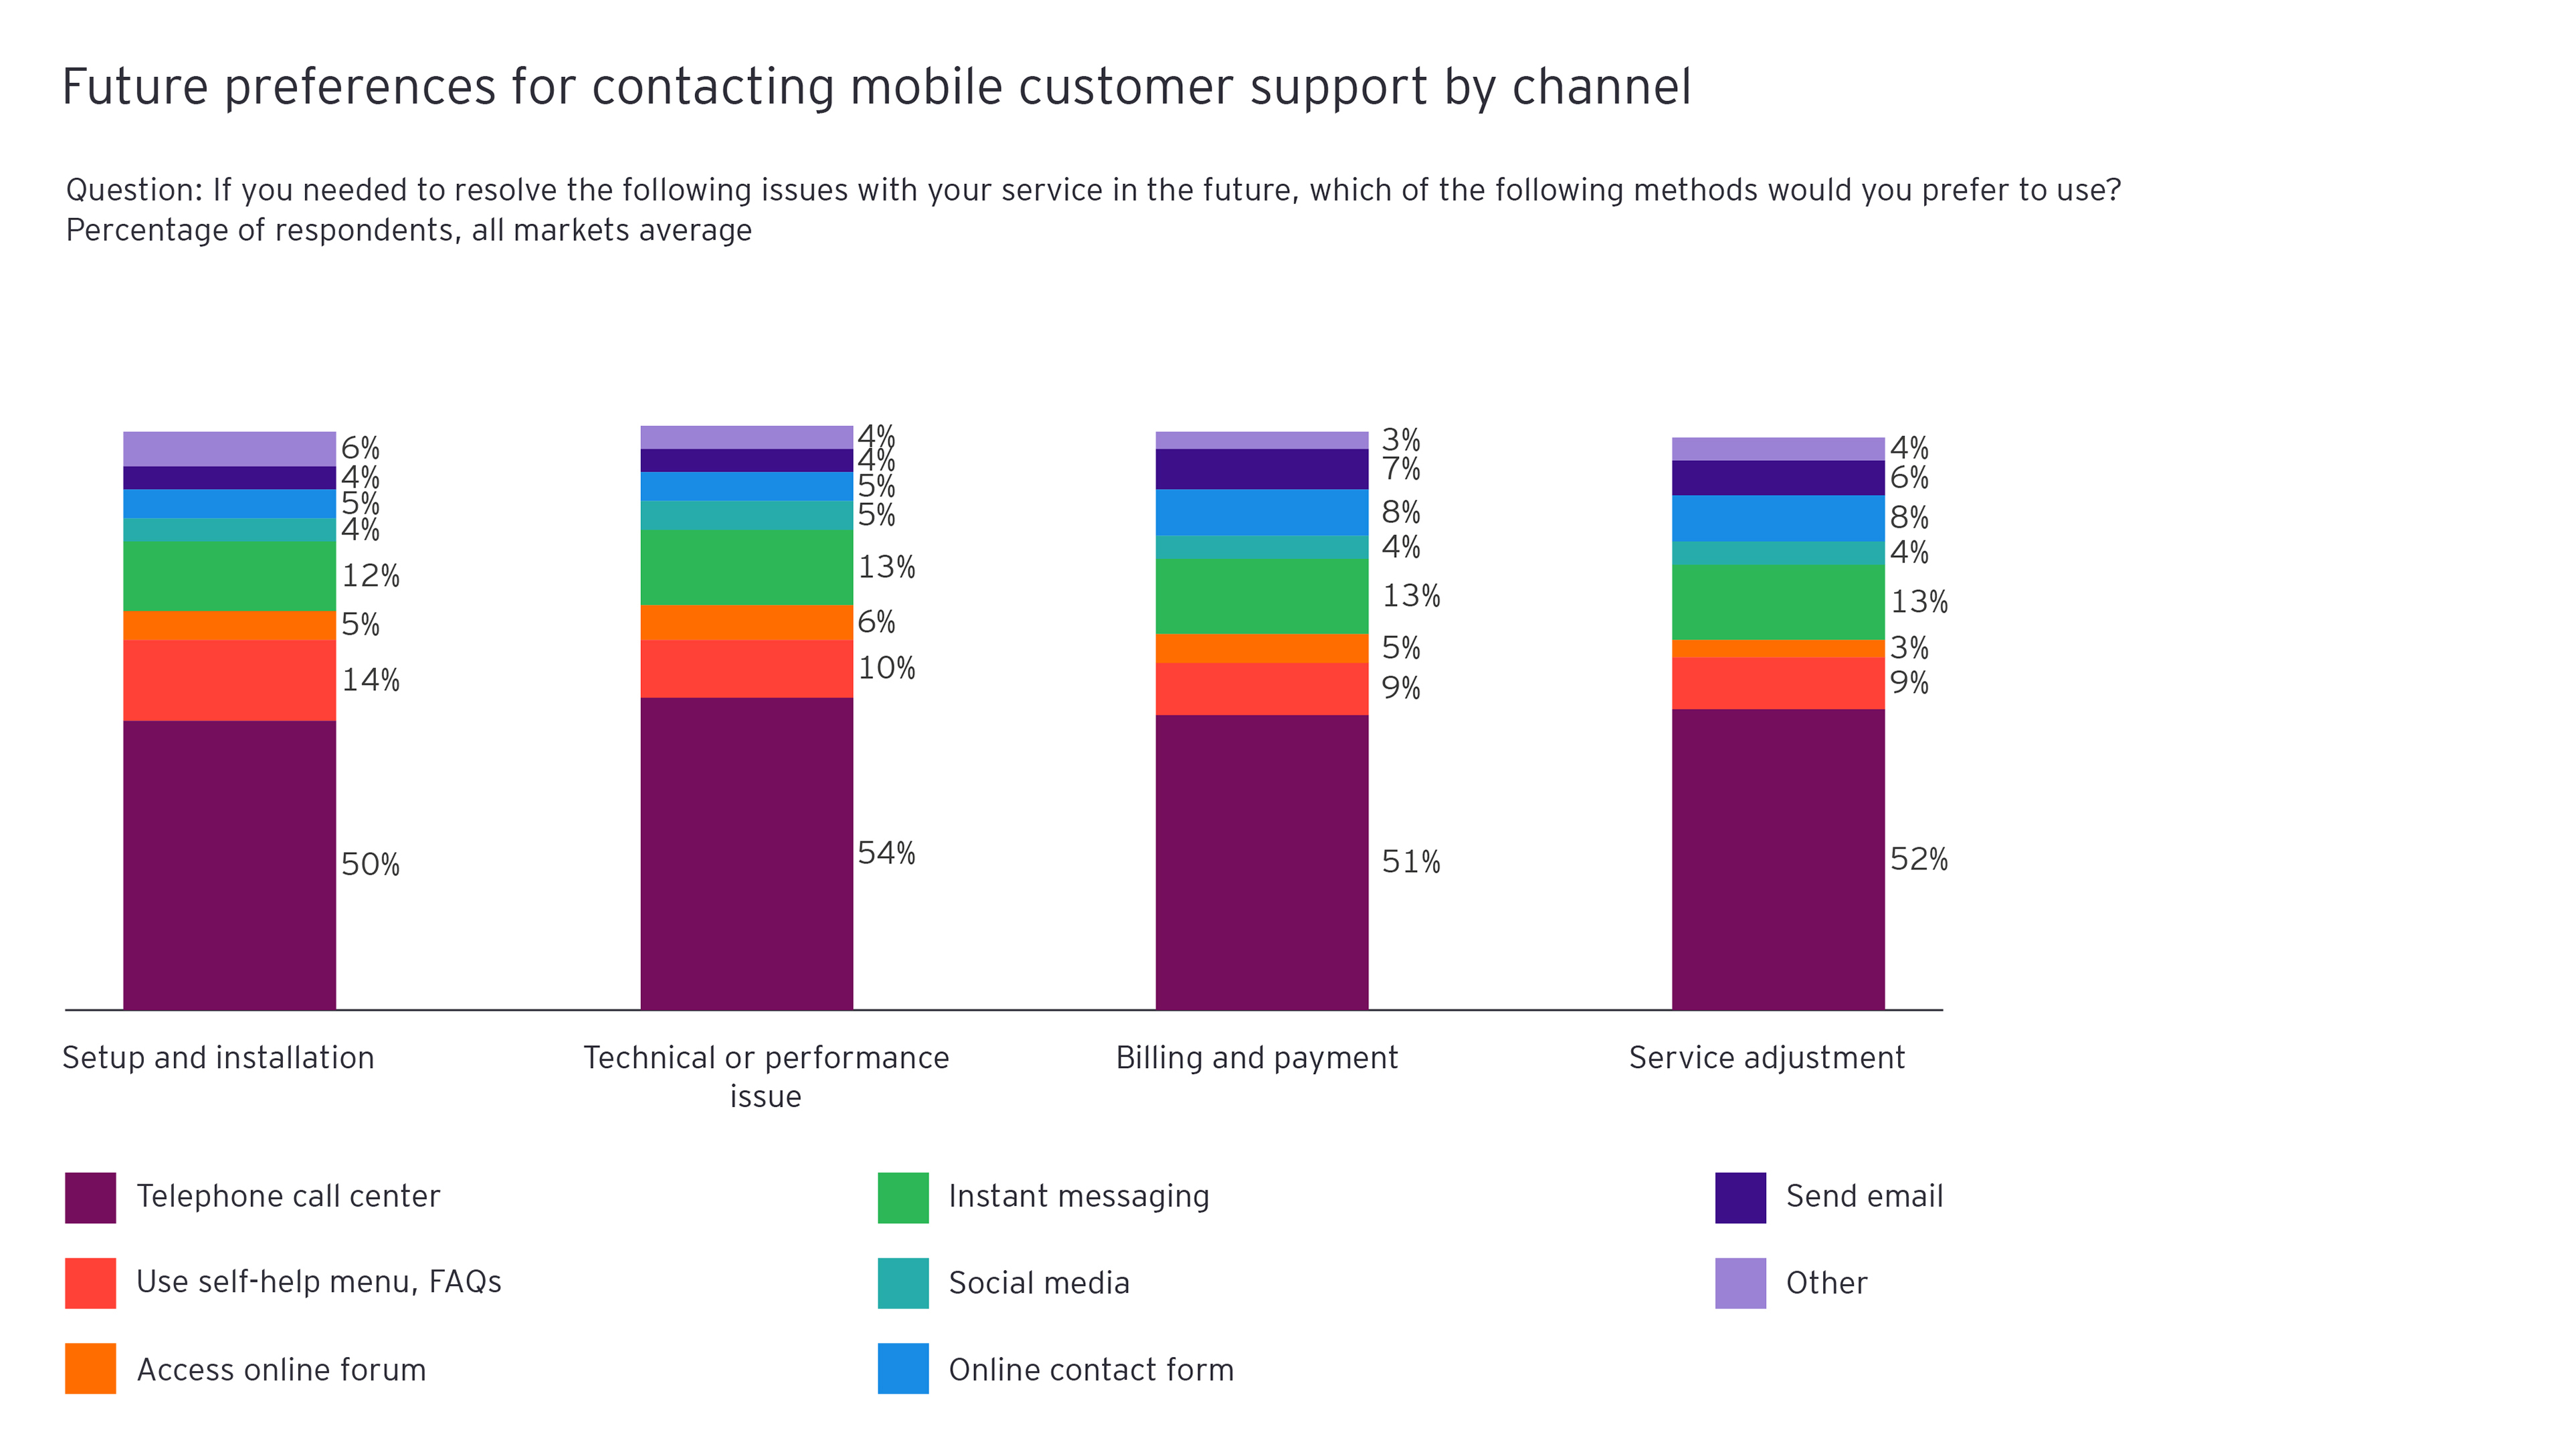 Figure 7: Future preferences for contacting mobile customer support by channel